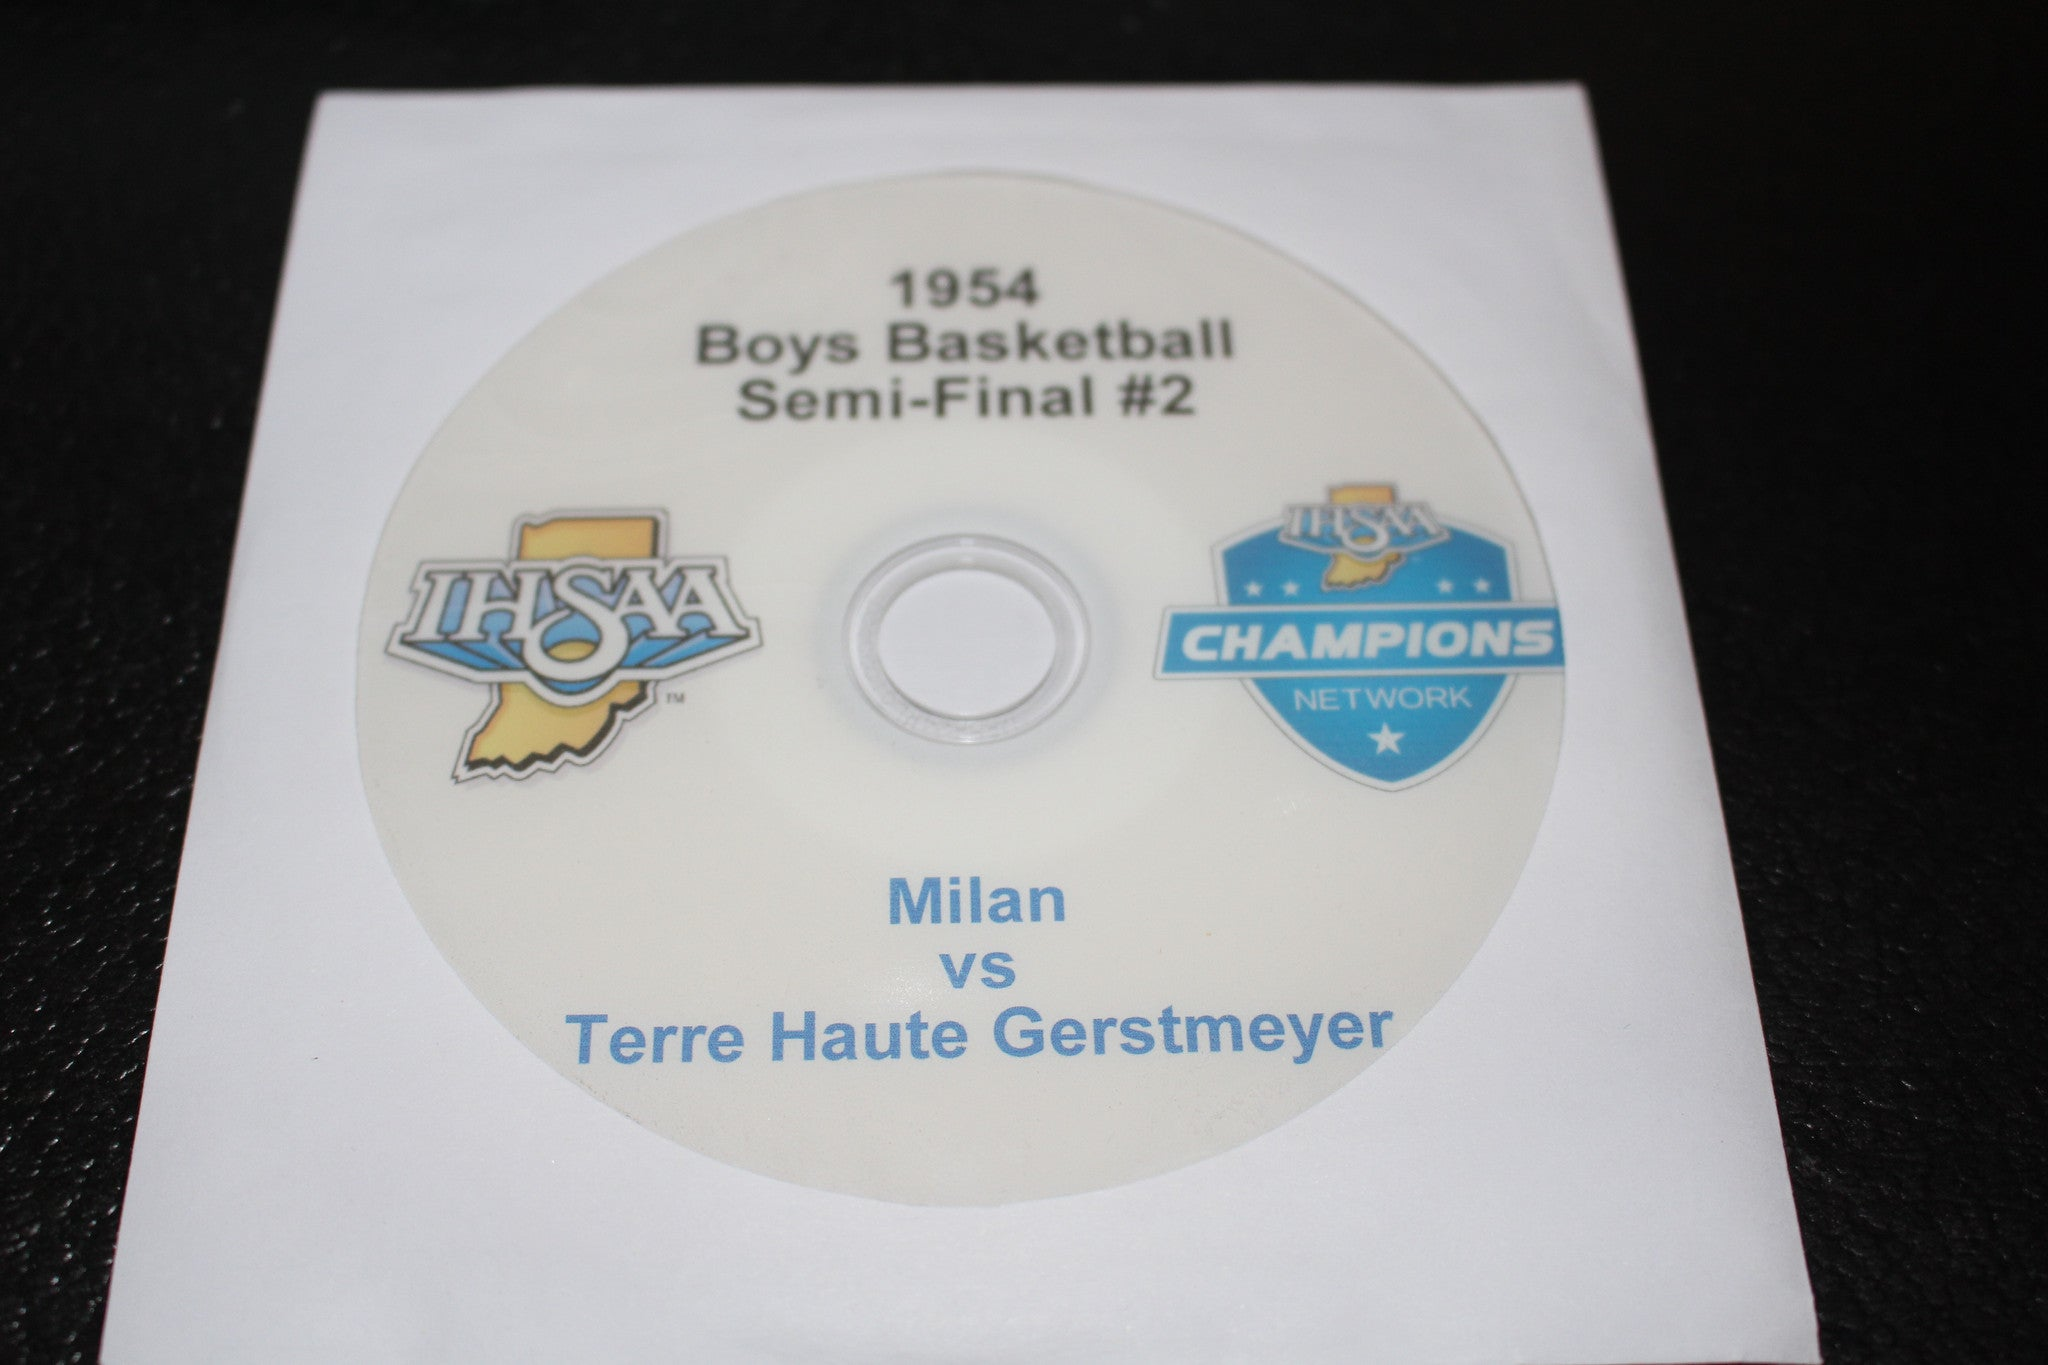 1954 Indiana High School Basketball Semi Final #2 DVD - Vintage Indy Sports